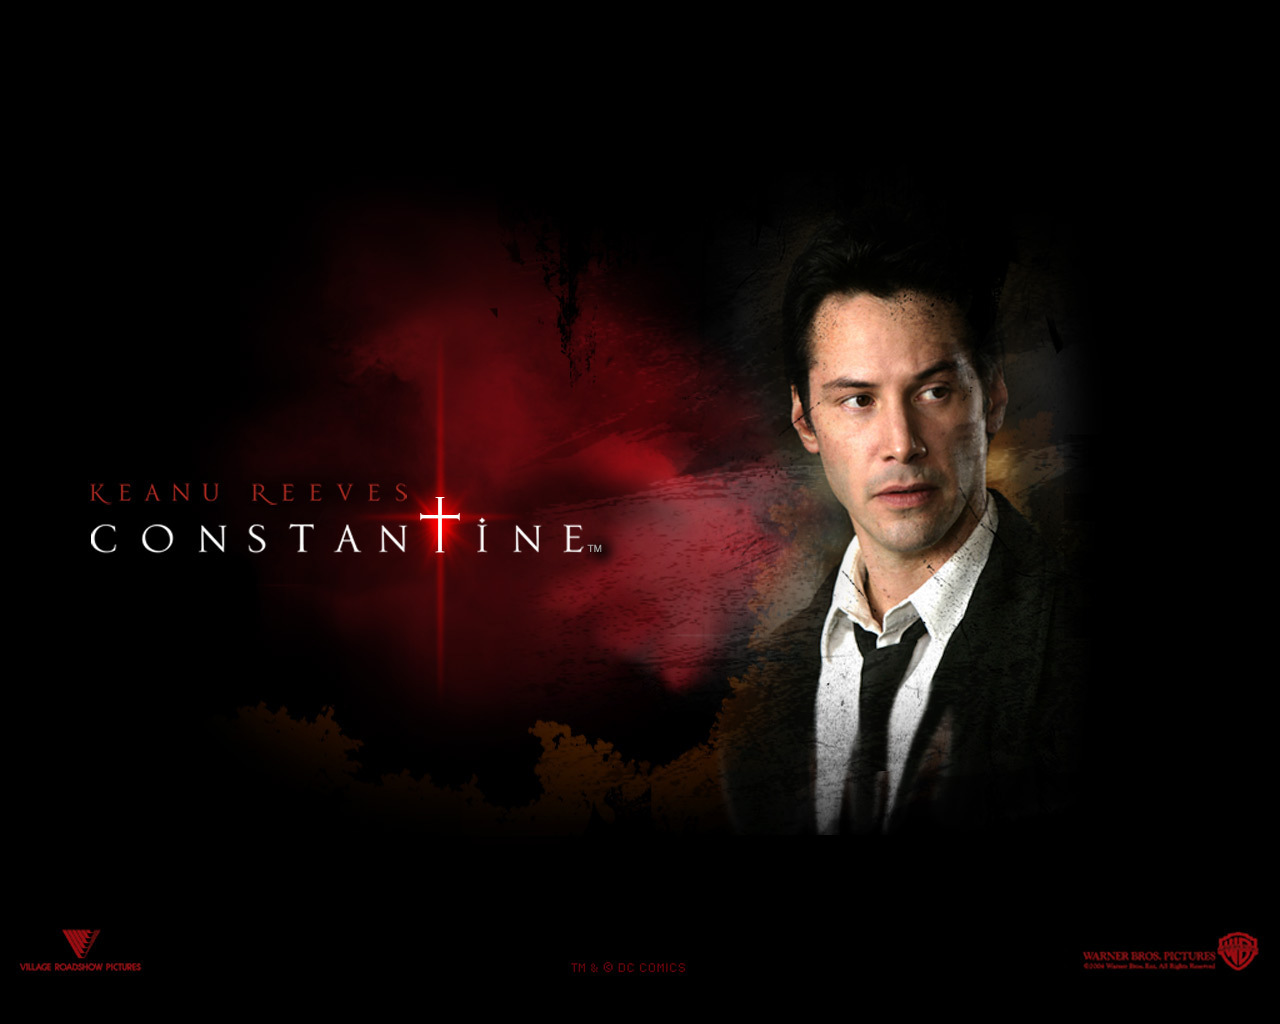 constantine images constantine movie hd wallpaper and